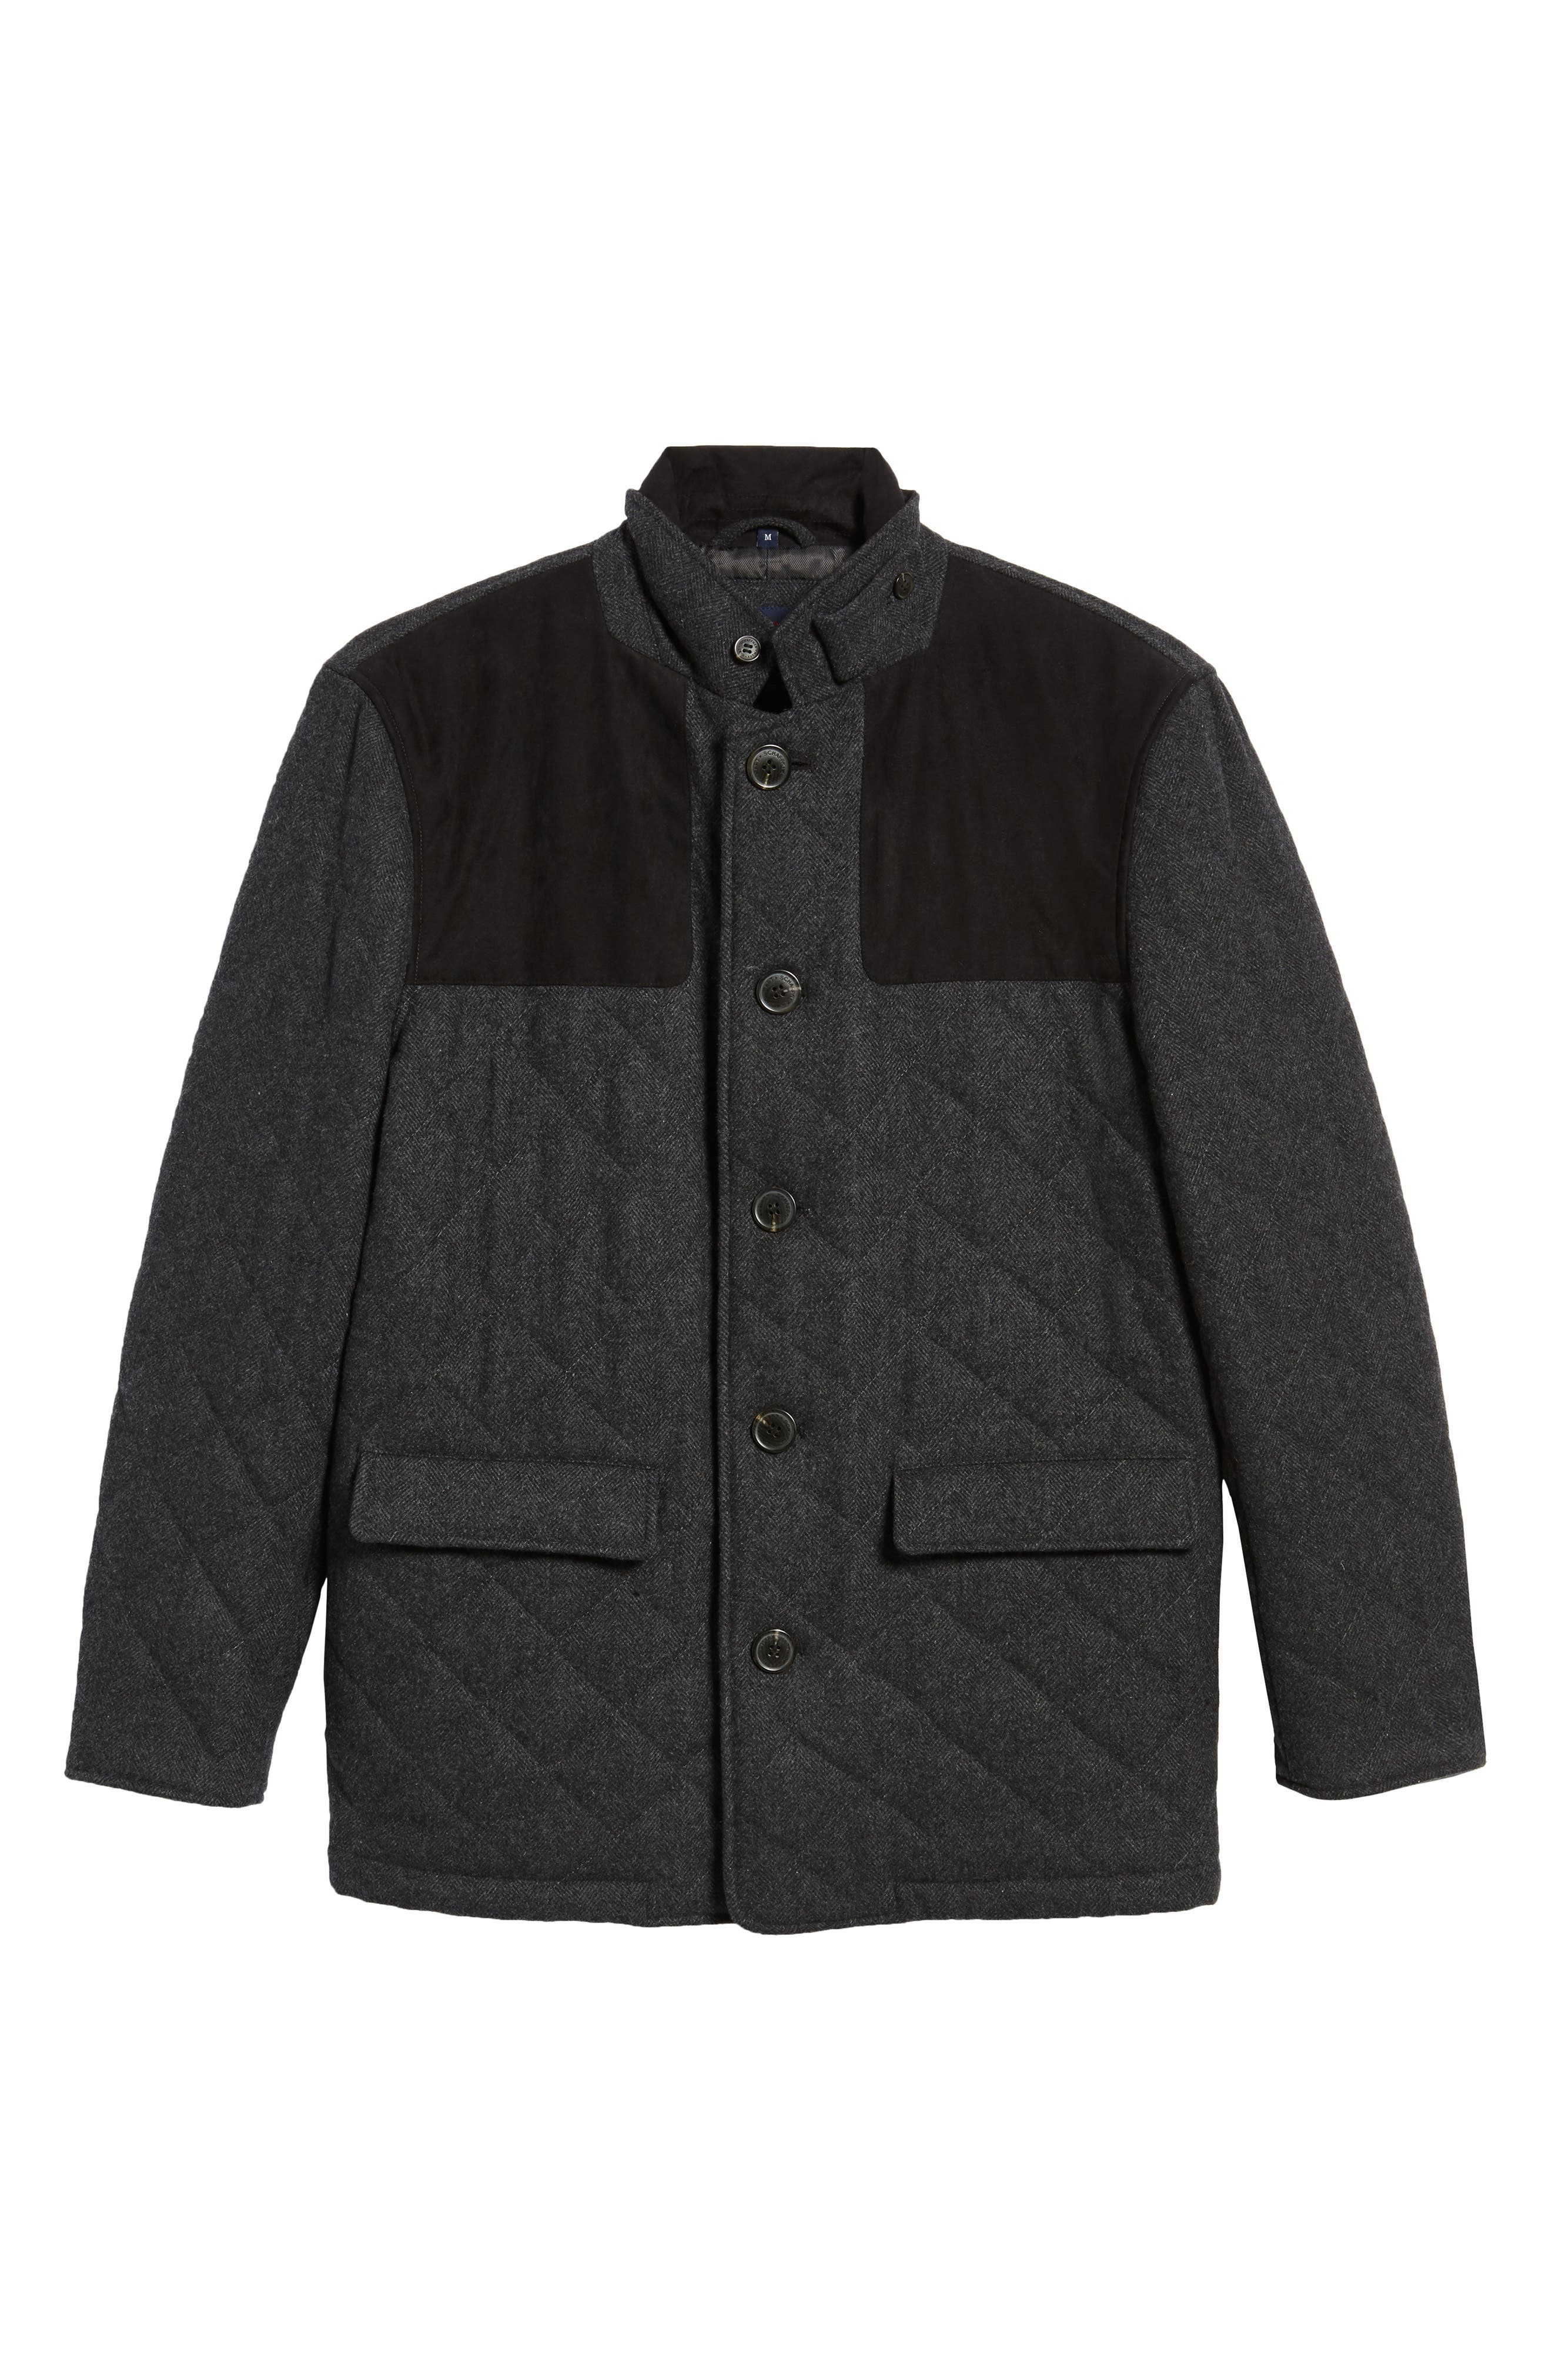 'Shooter' Wool Blend Quilted Jacket,                             Alternate thumbnail 13, color,